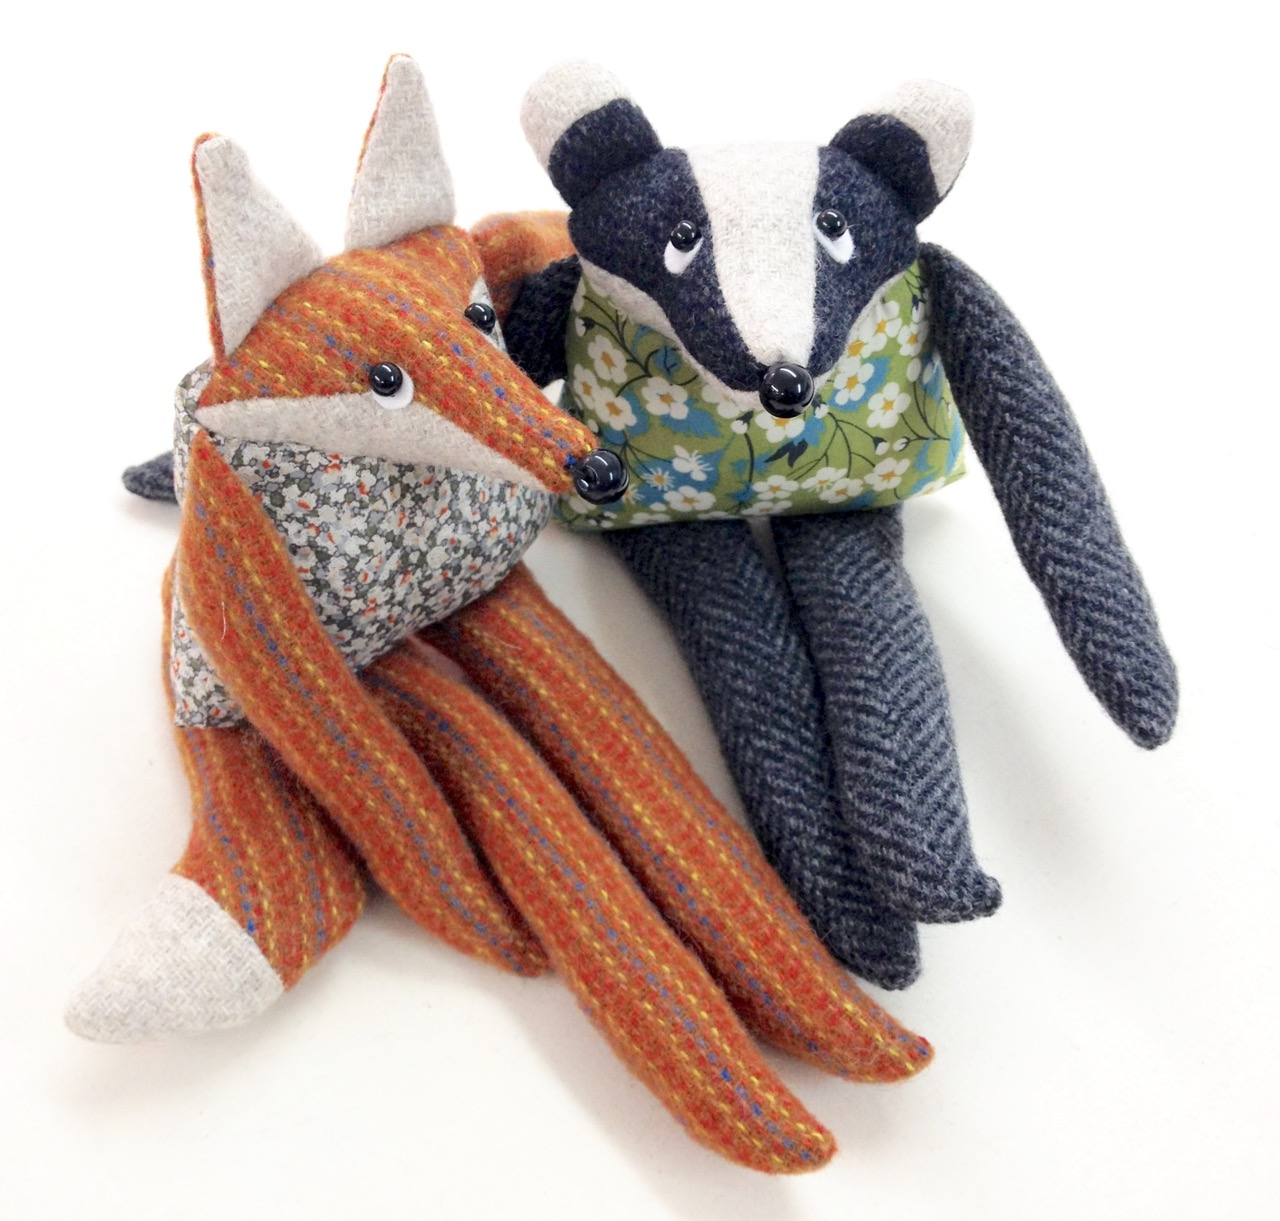 Fox and badger artist rag doll handmade from British tweed and Liberty print fabrics.